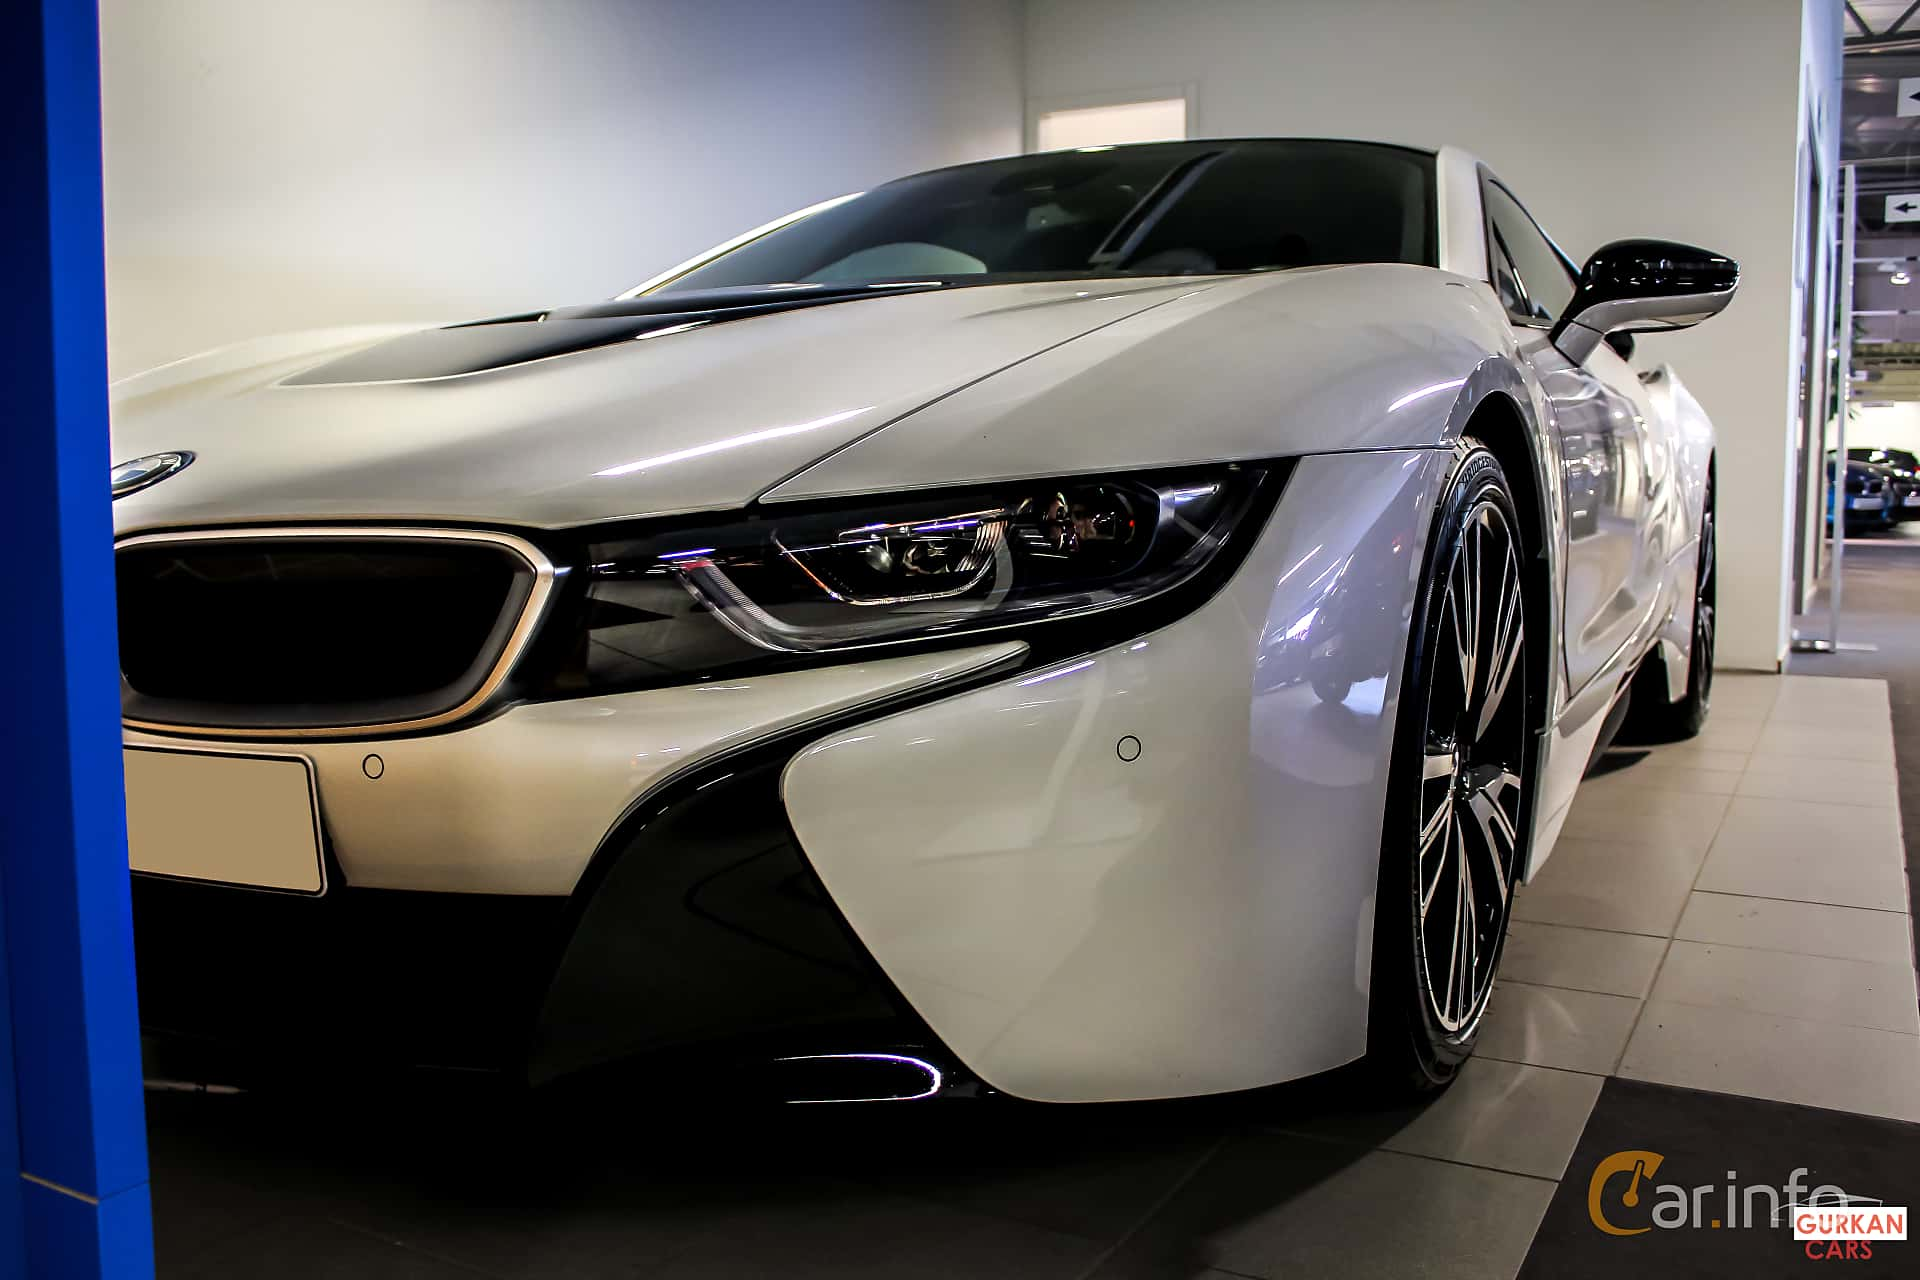 BMW i8 1.5 + 7.1 kWh Steptronic, 362hk, 2014